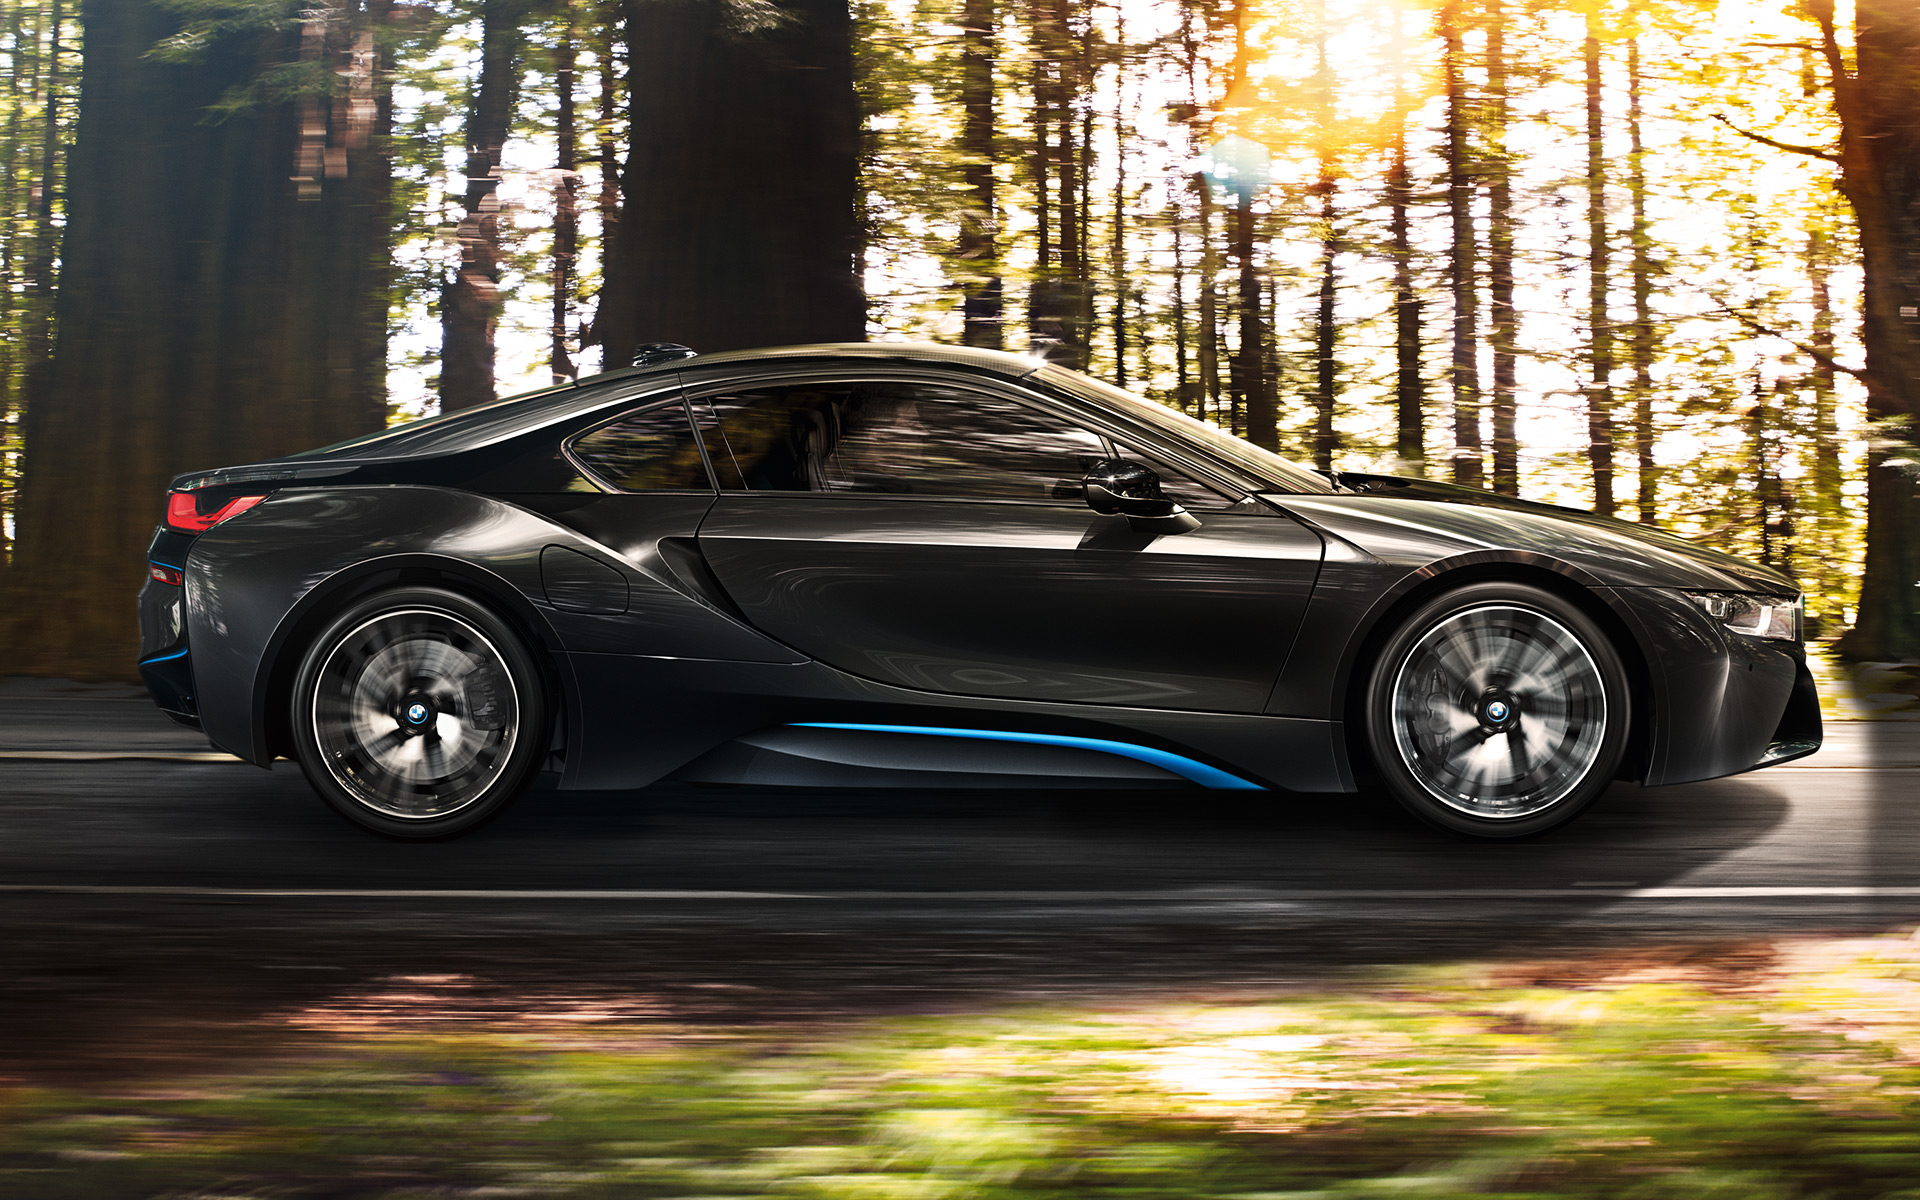 Driving Luxury BMW i8 on road